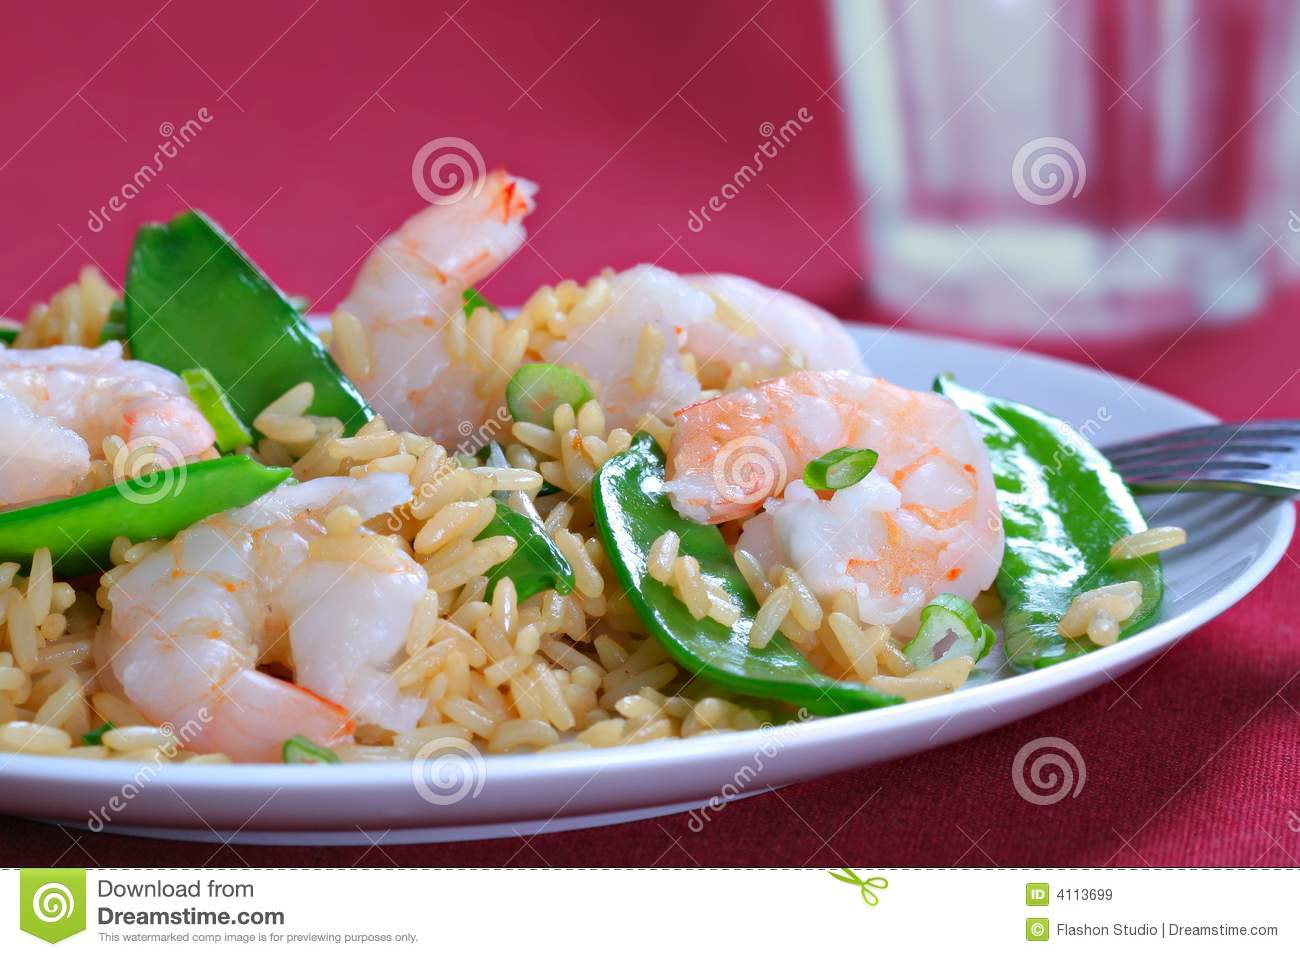 Shrimp Stir Fry Rice With Pea Pod Royalty Free Stock Images - Image ...